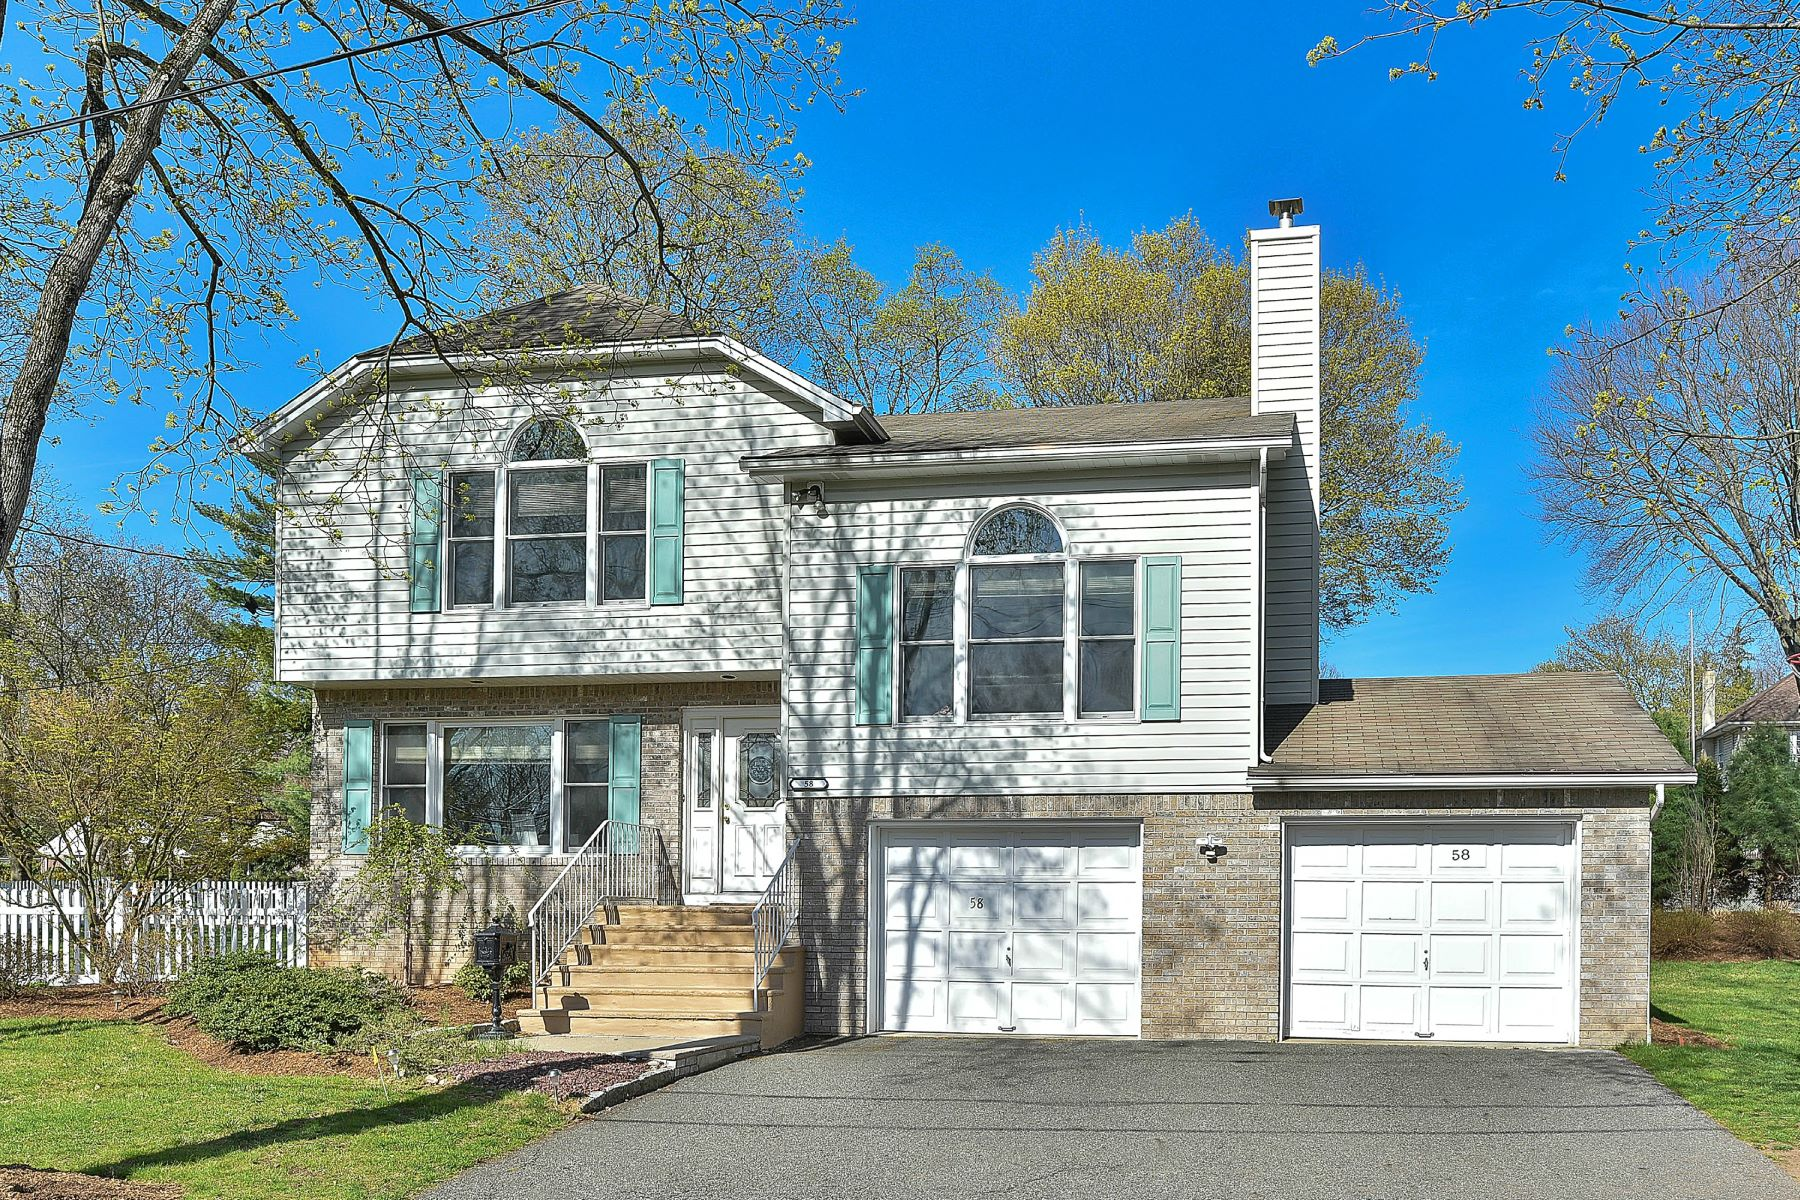 Single Family Home for Rent at Amazing Closter Home for Rent! 58 Fairview Avenue, Closter, New Jersey 07624 United States